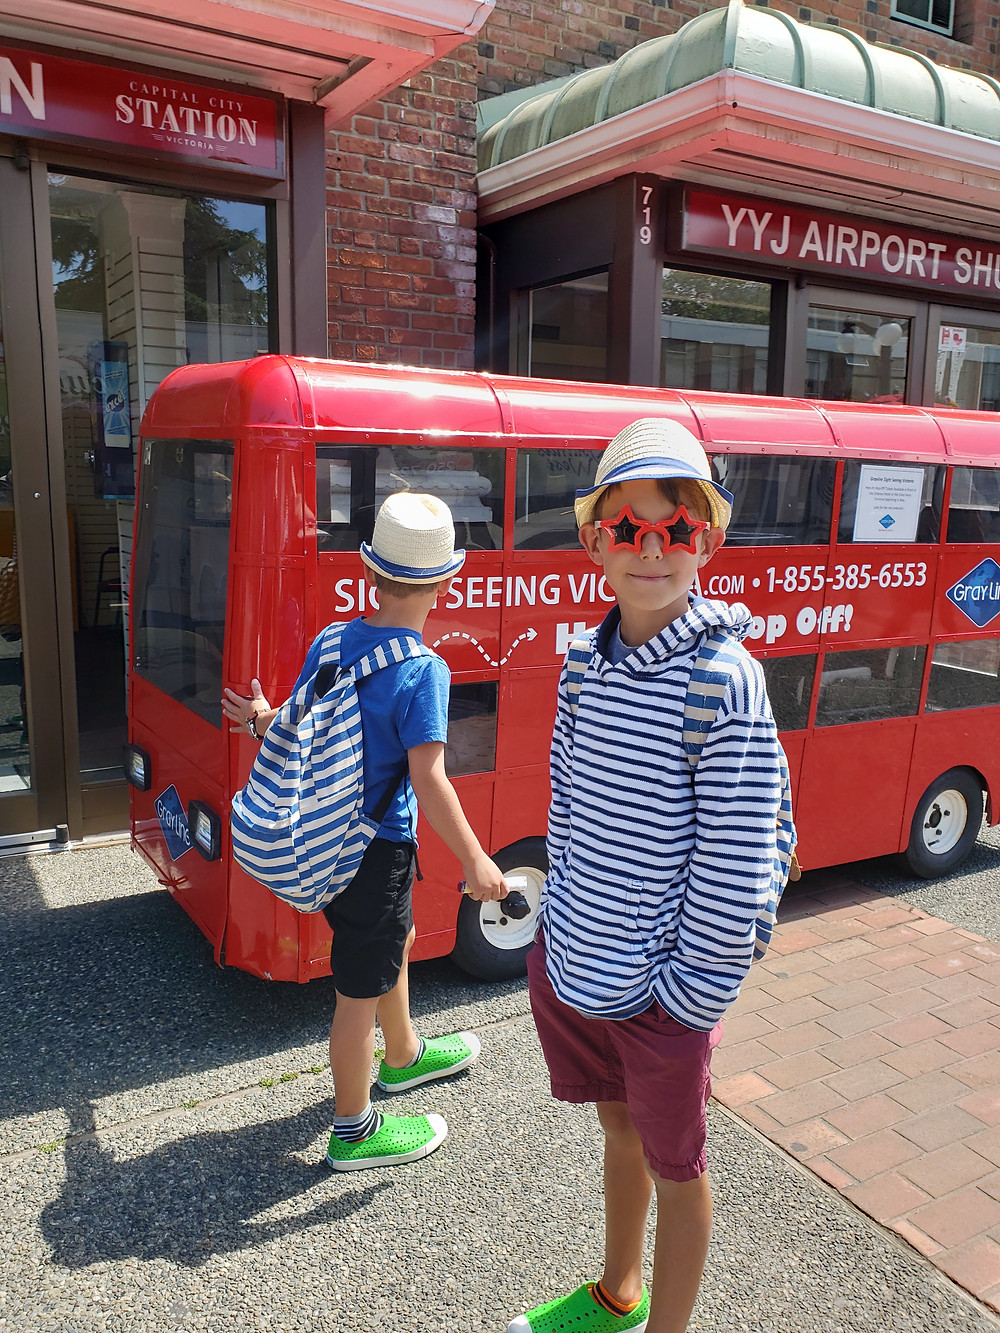 Kids Travel, Sightseeing Victoria